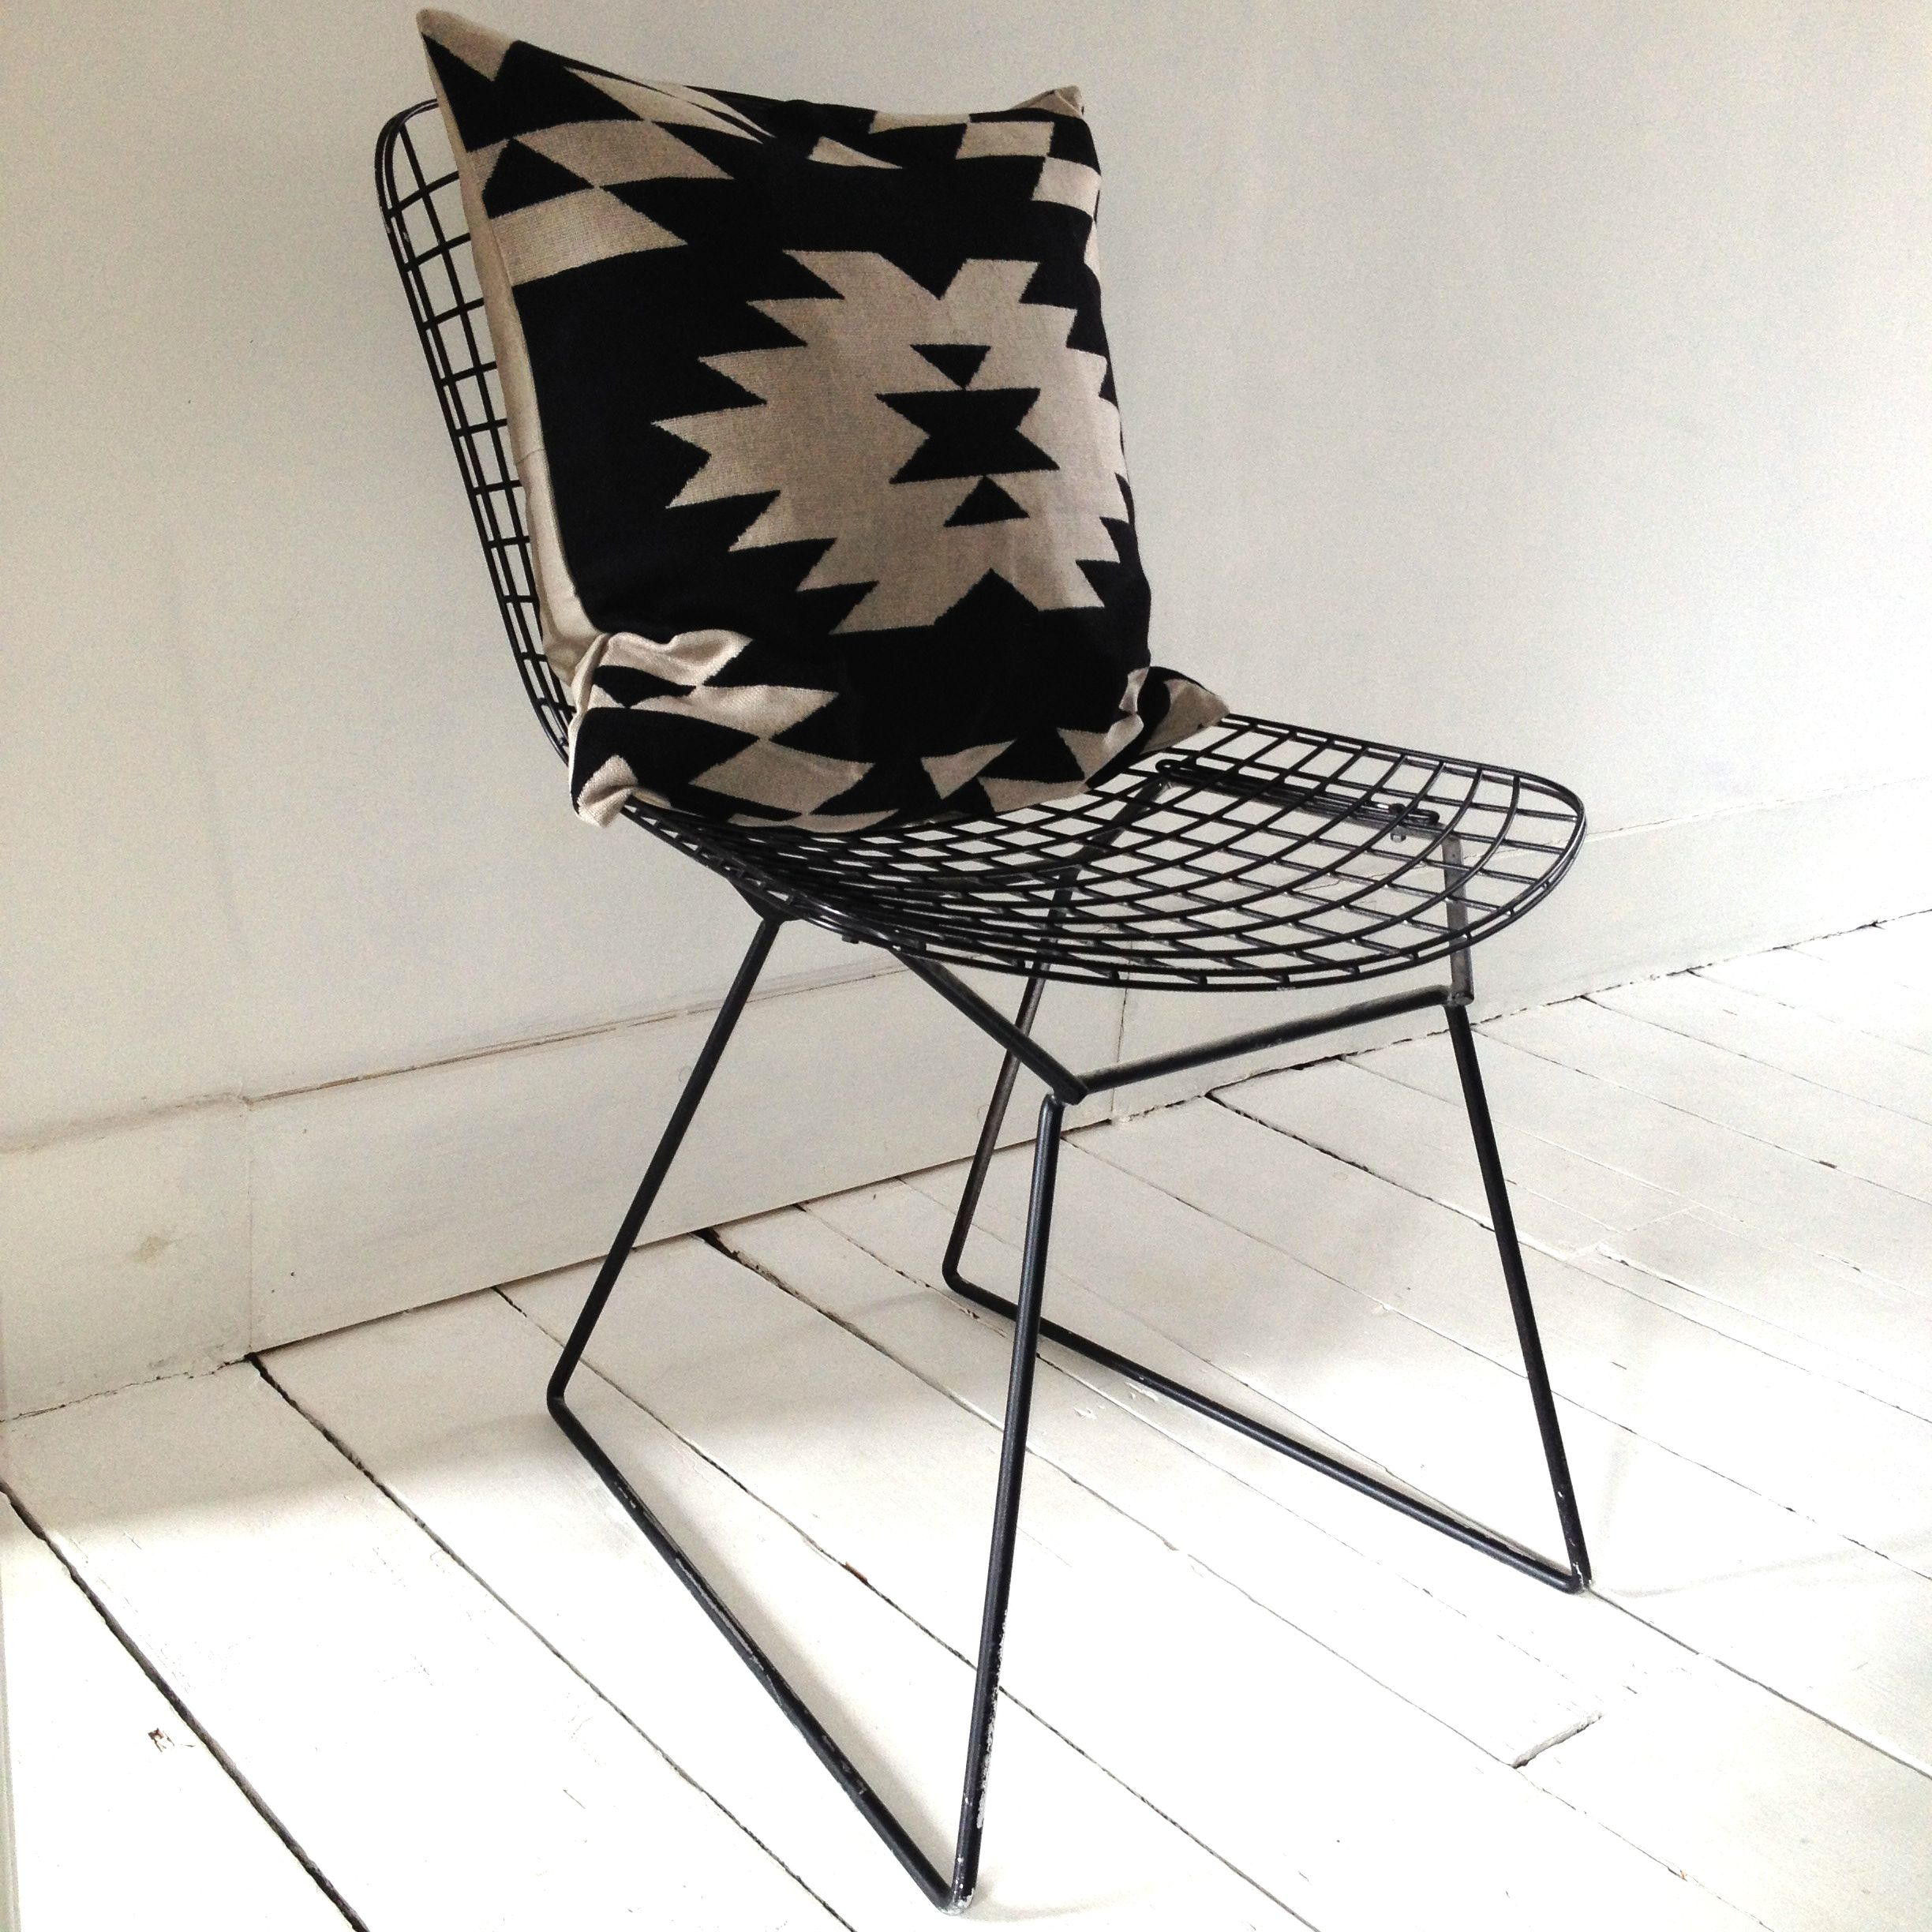 bertoia style chair. Black Wire Harry Bertoia Style Chair With Aztec Monochrome White Cushion